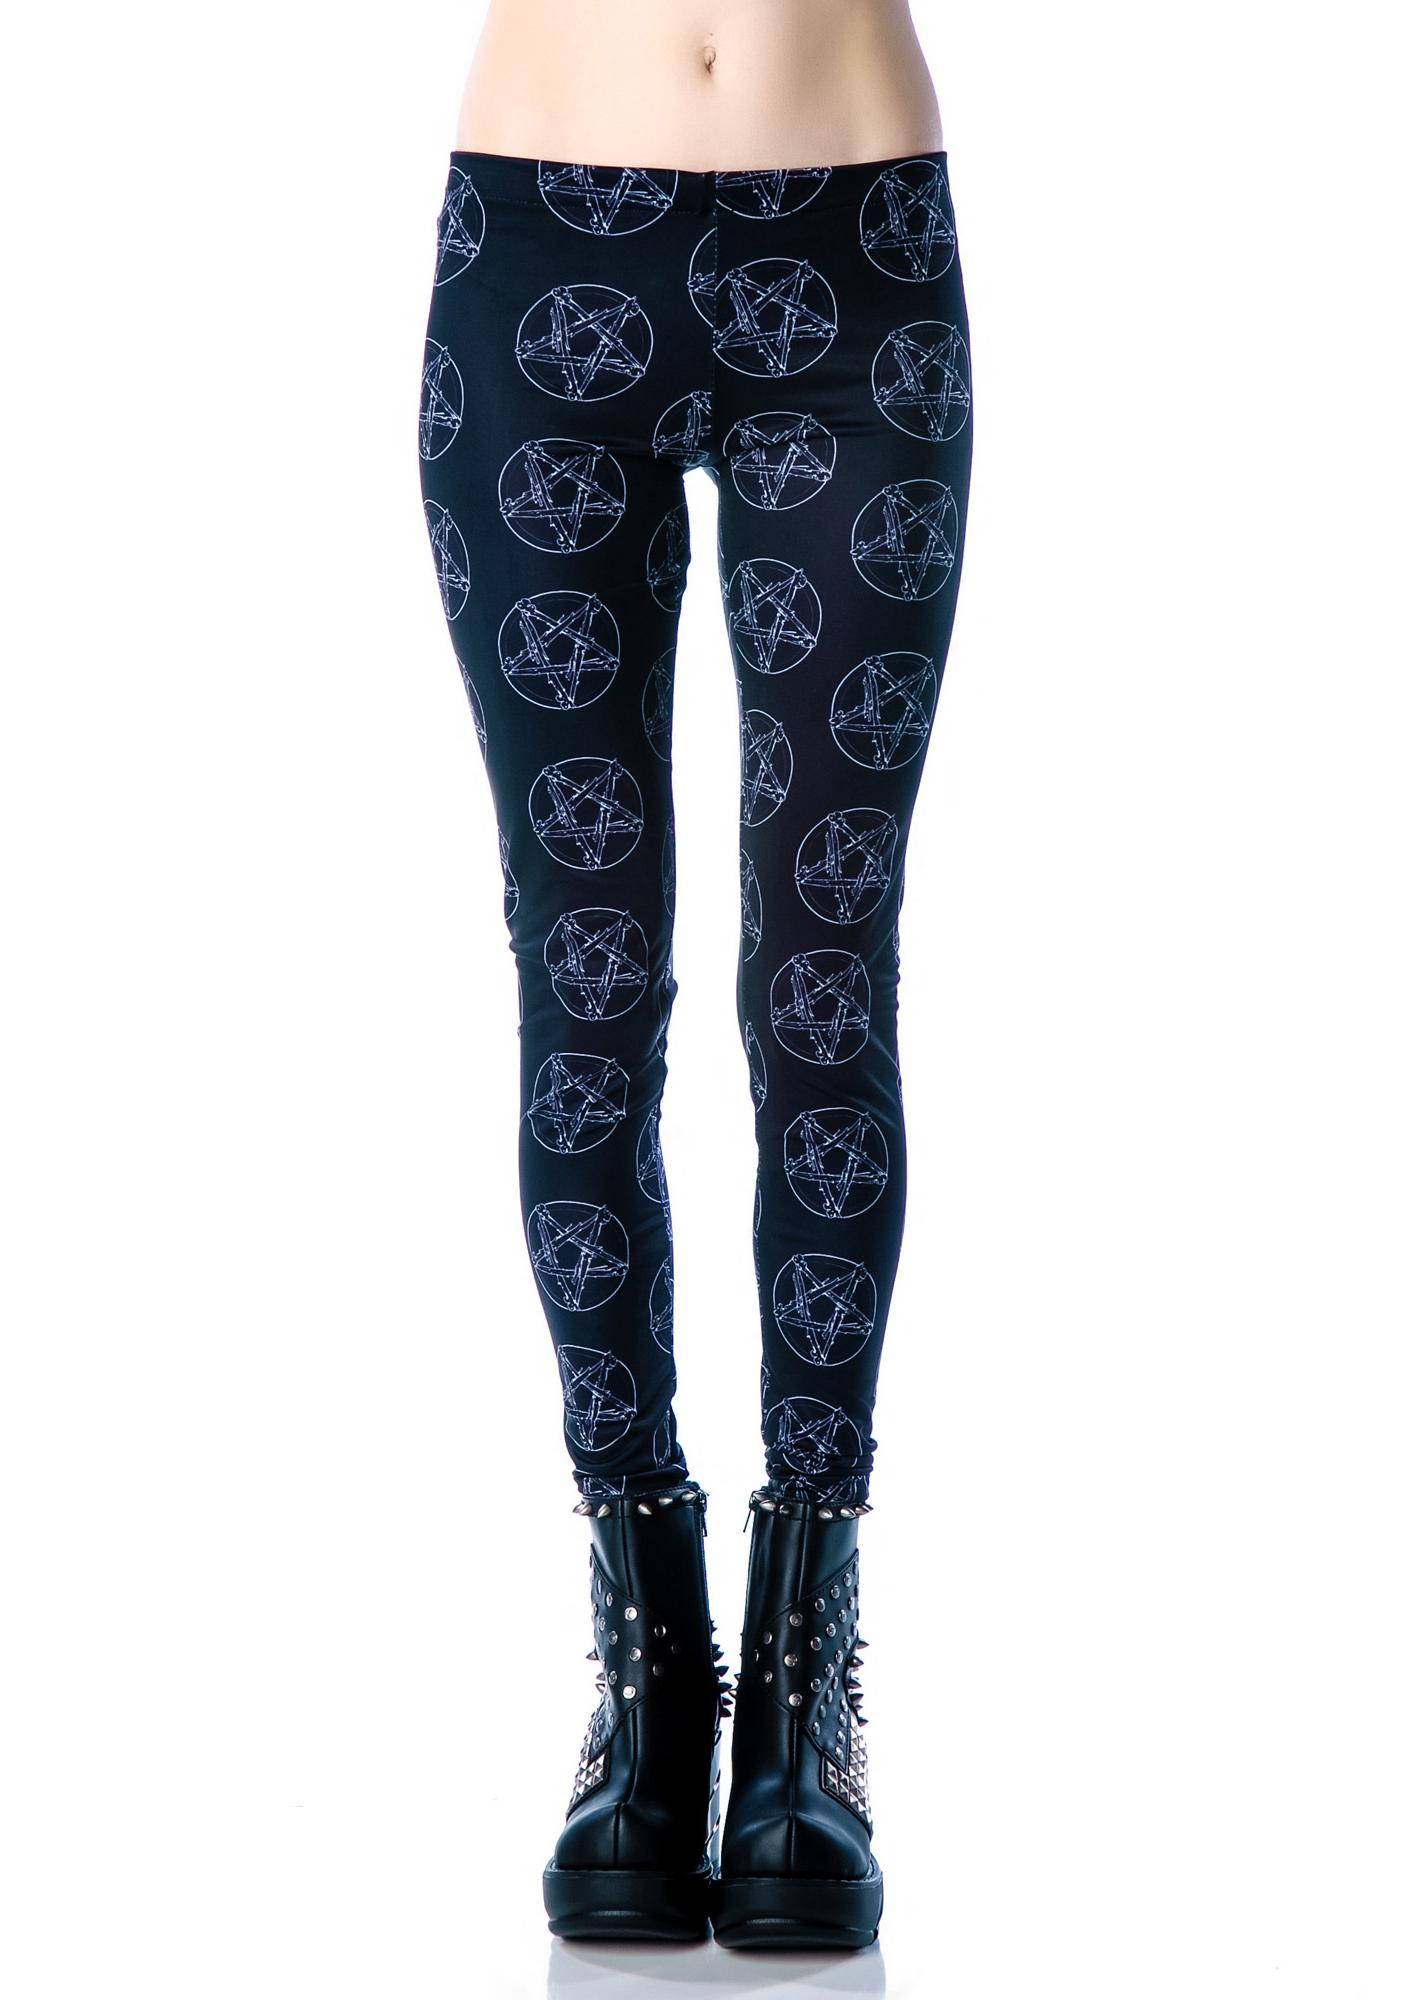 No Rest for the Wicked Pentagram Leggings